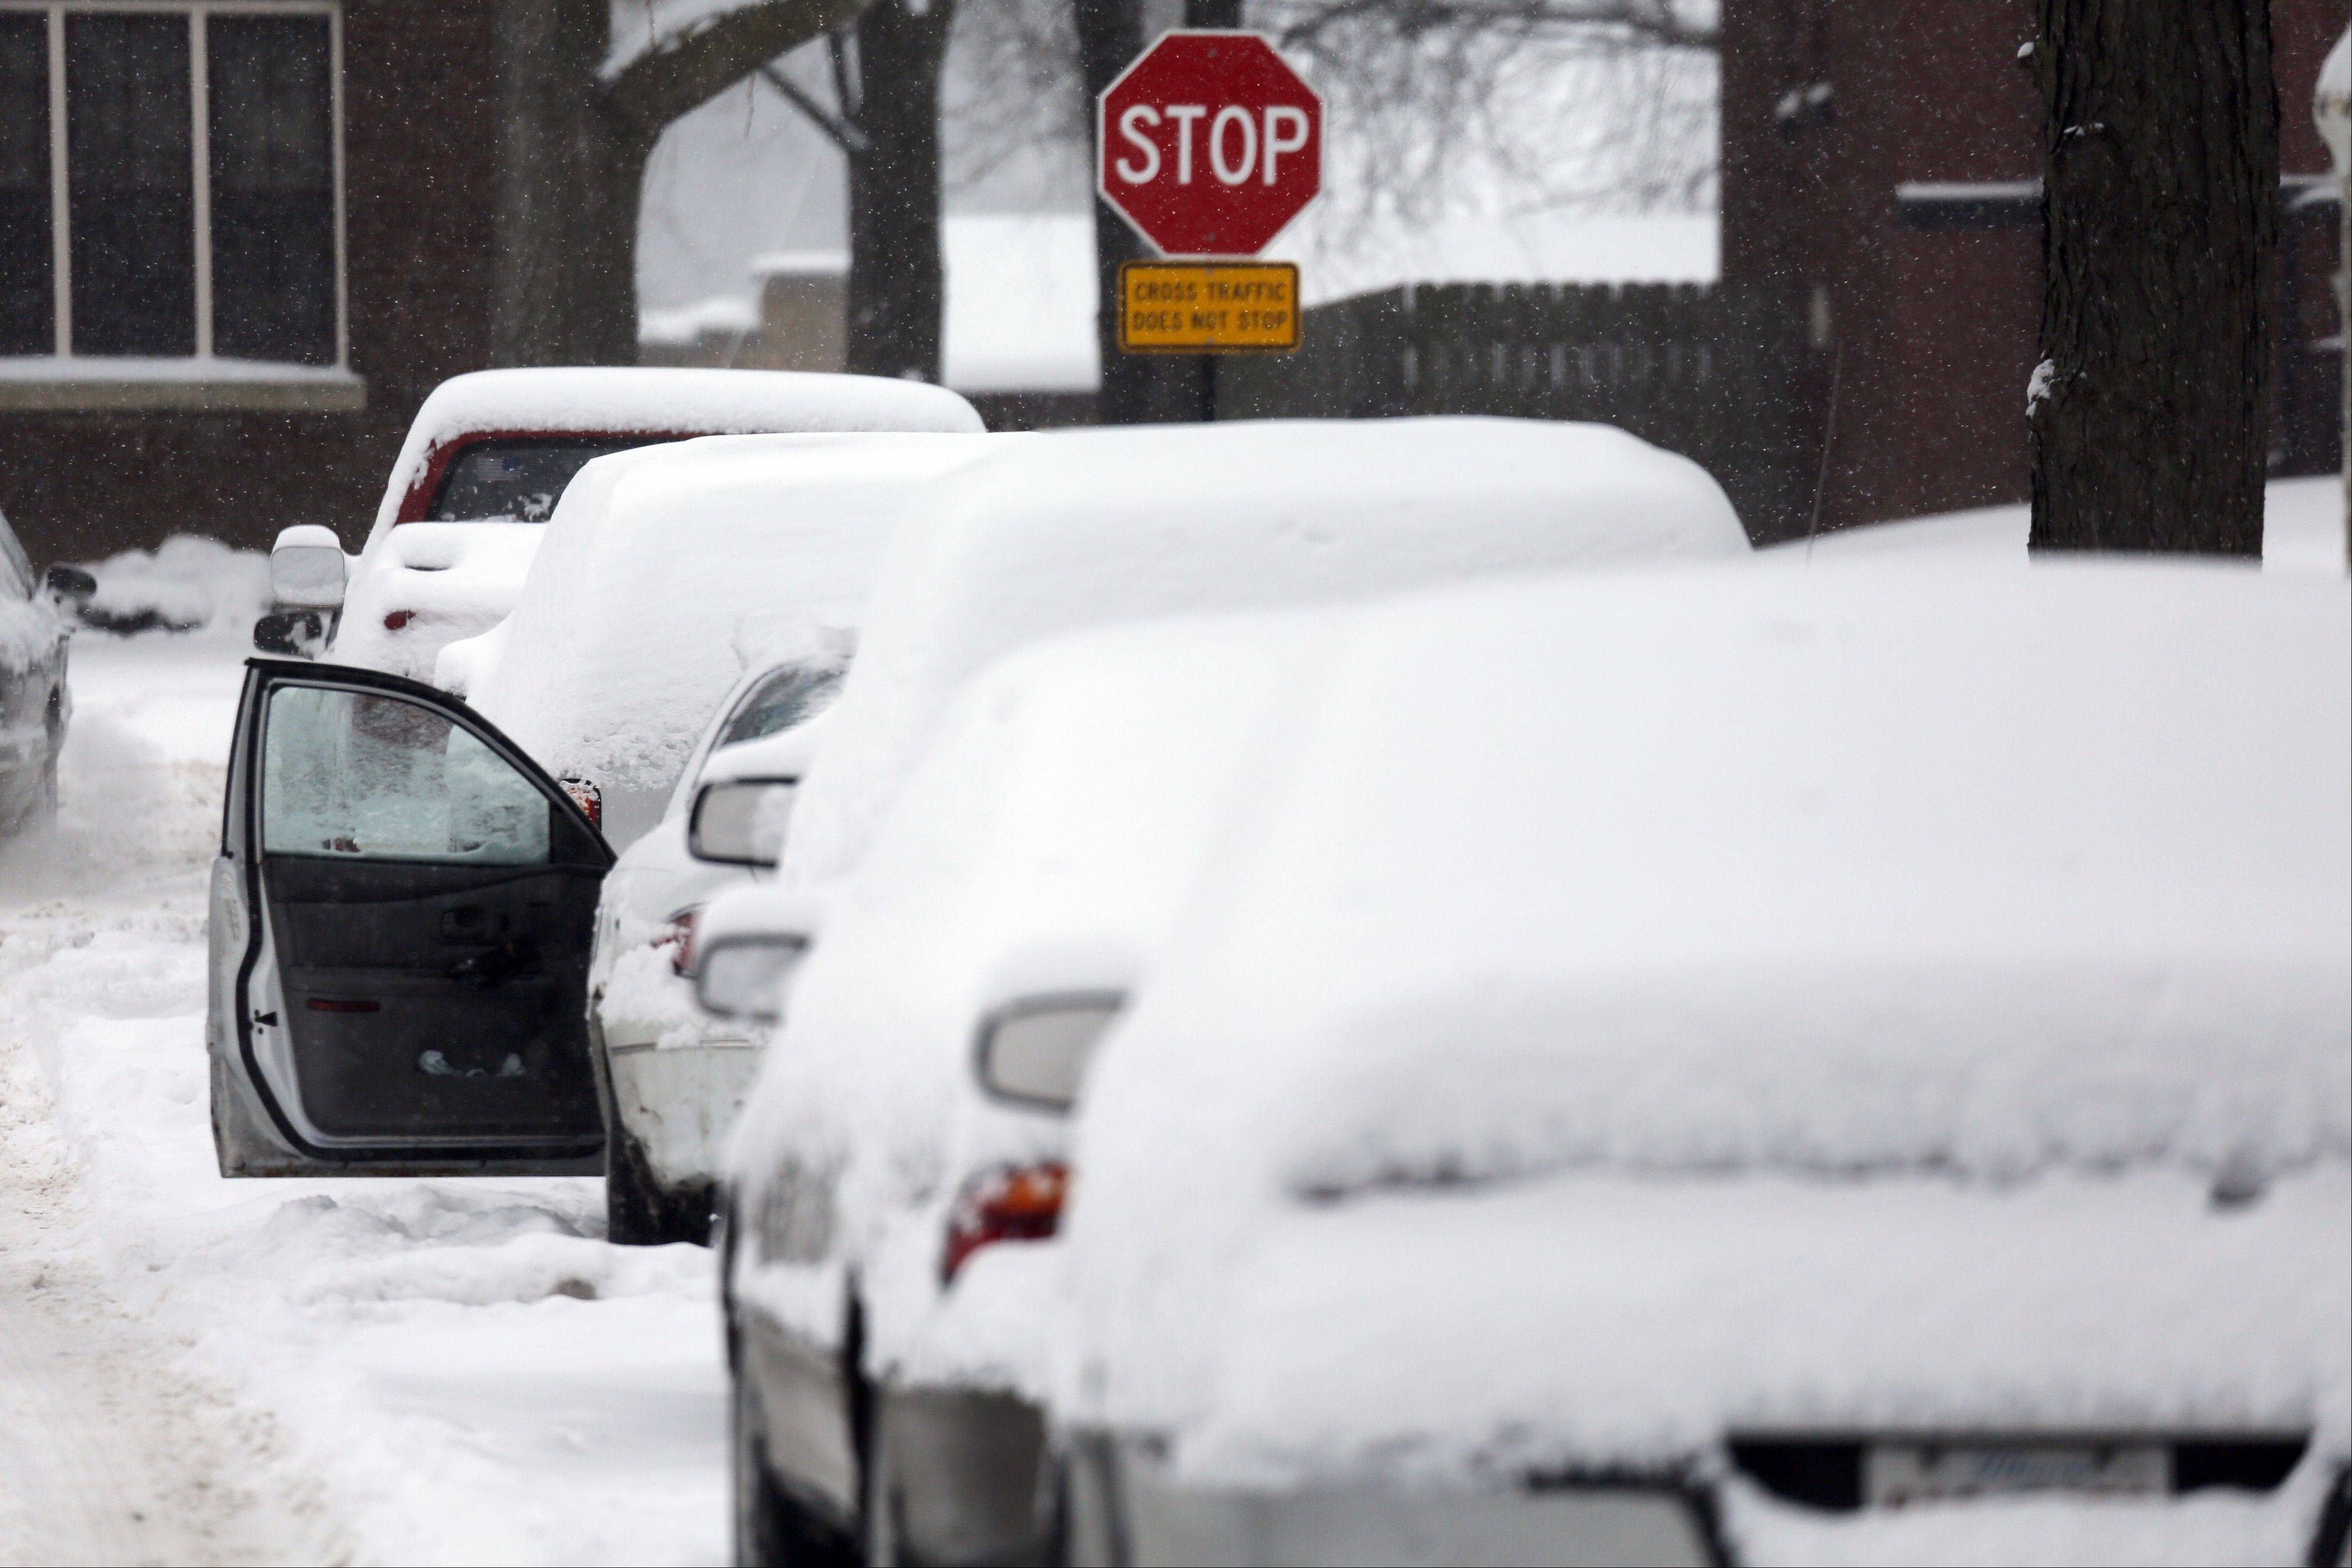 Snow Sunday left many in Elgin digging out their cars. Forecasters predicted the snowfall would stop by the end of the day, but dangerously cold temperatures would soon follow. Several suburban school districts were calling off Monday's classes by midday Sunday.